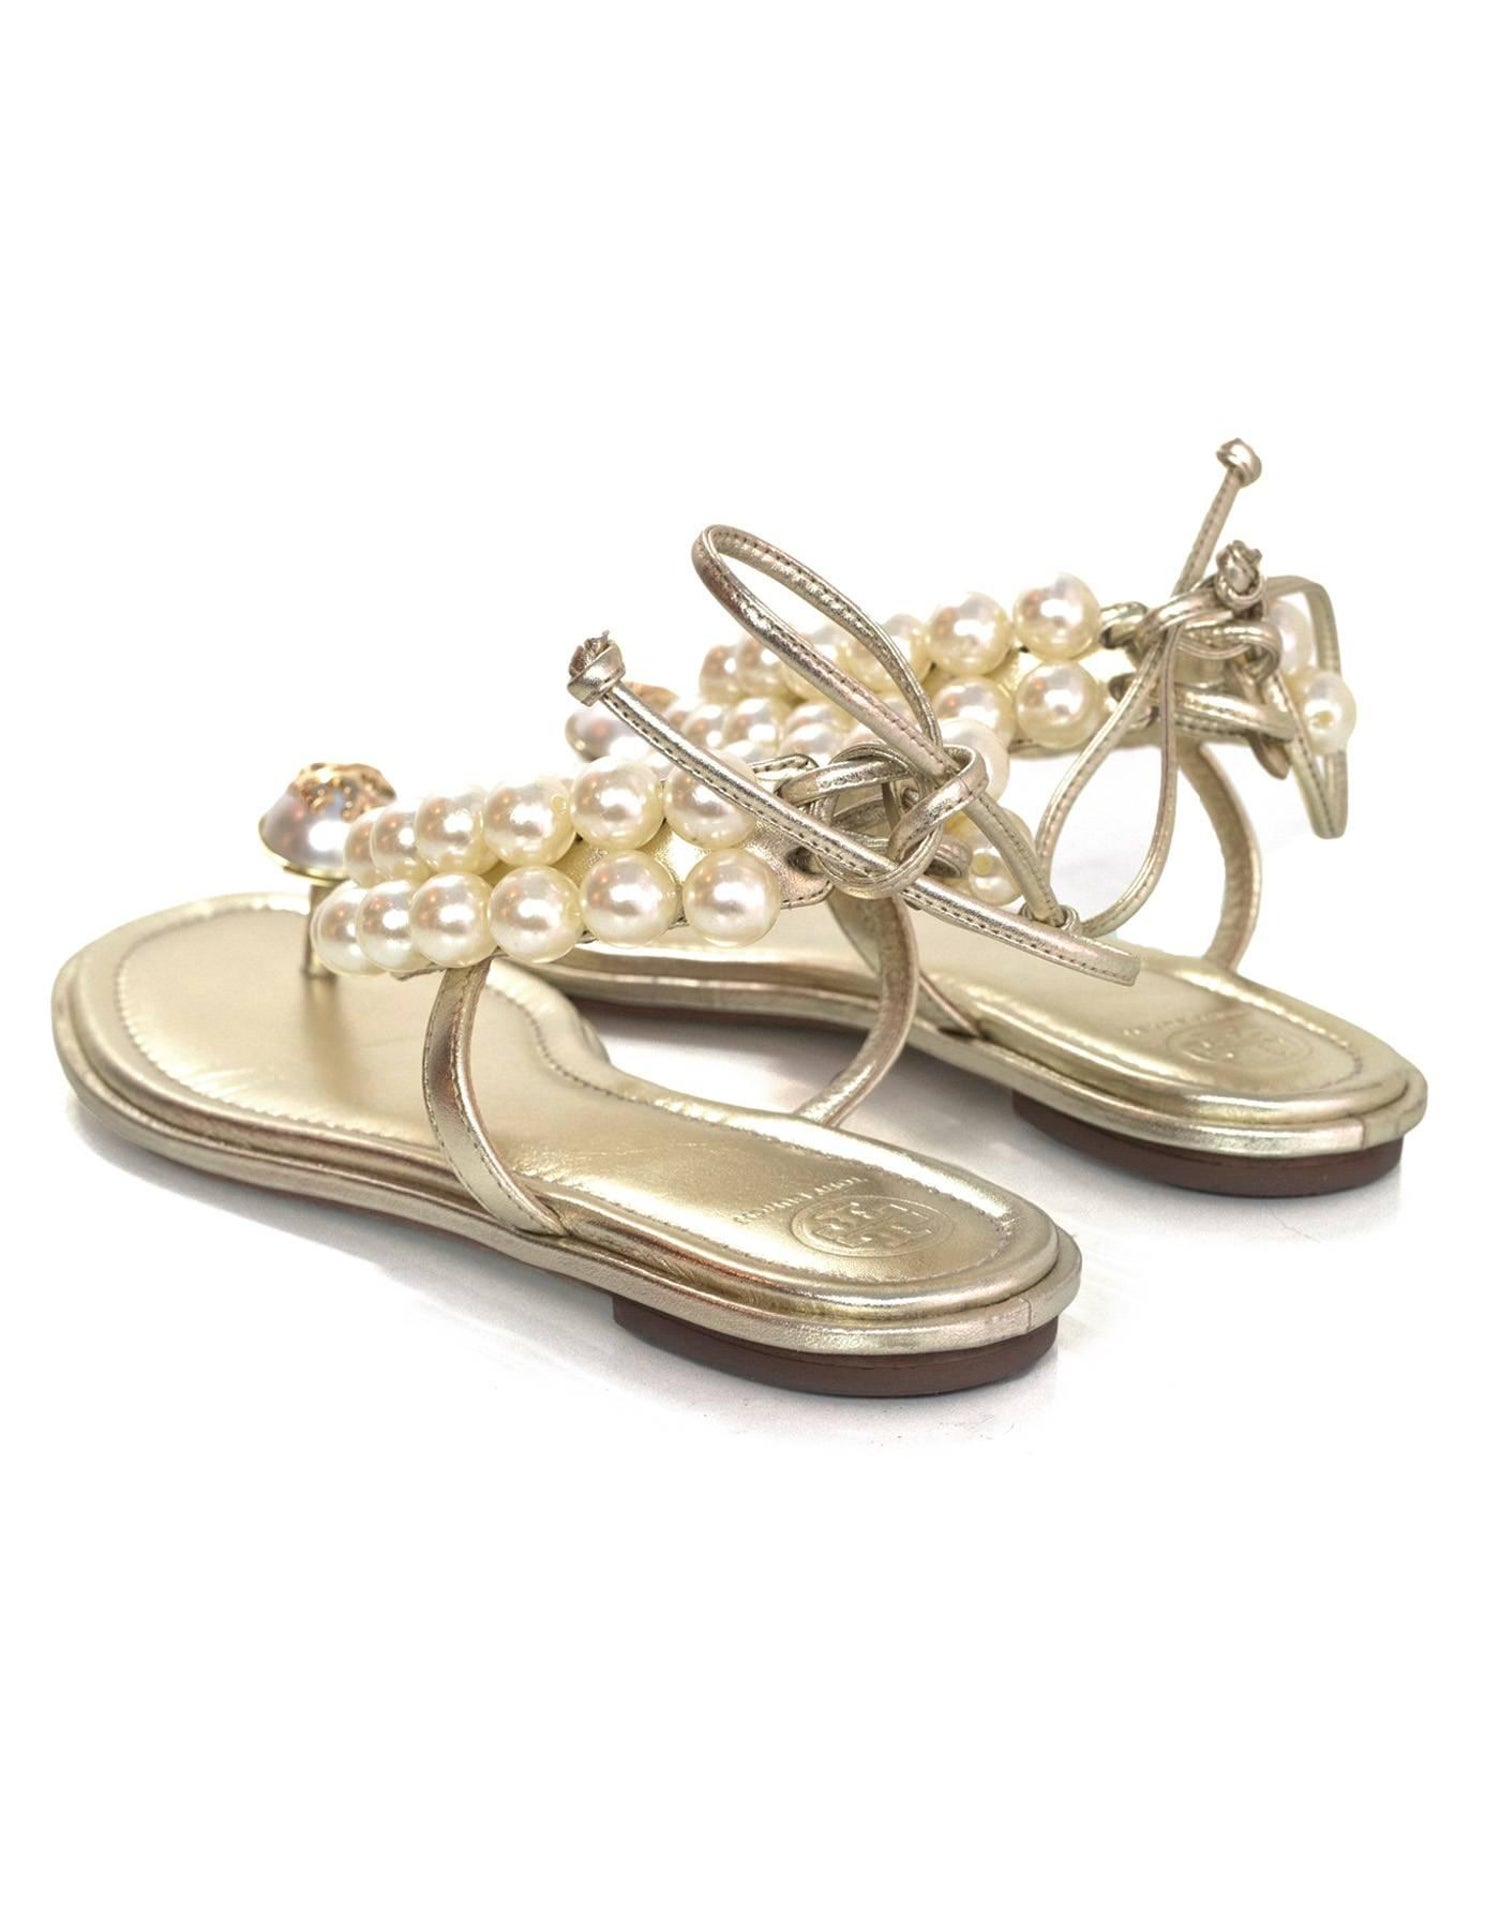 0e5409fb30bc Tory Burch Melody Pearl Sandals Sz 9.5 rt.  325 For Sale at 1stdibs